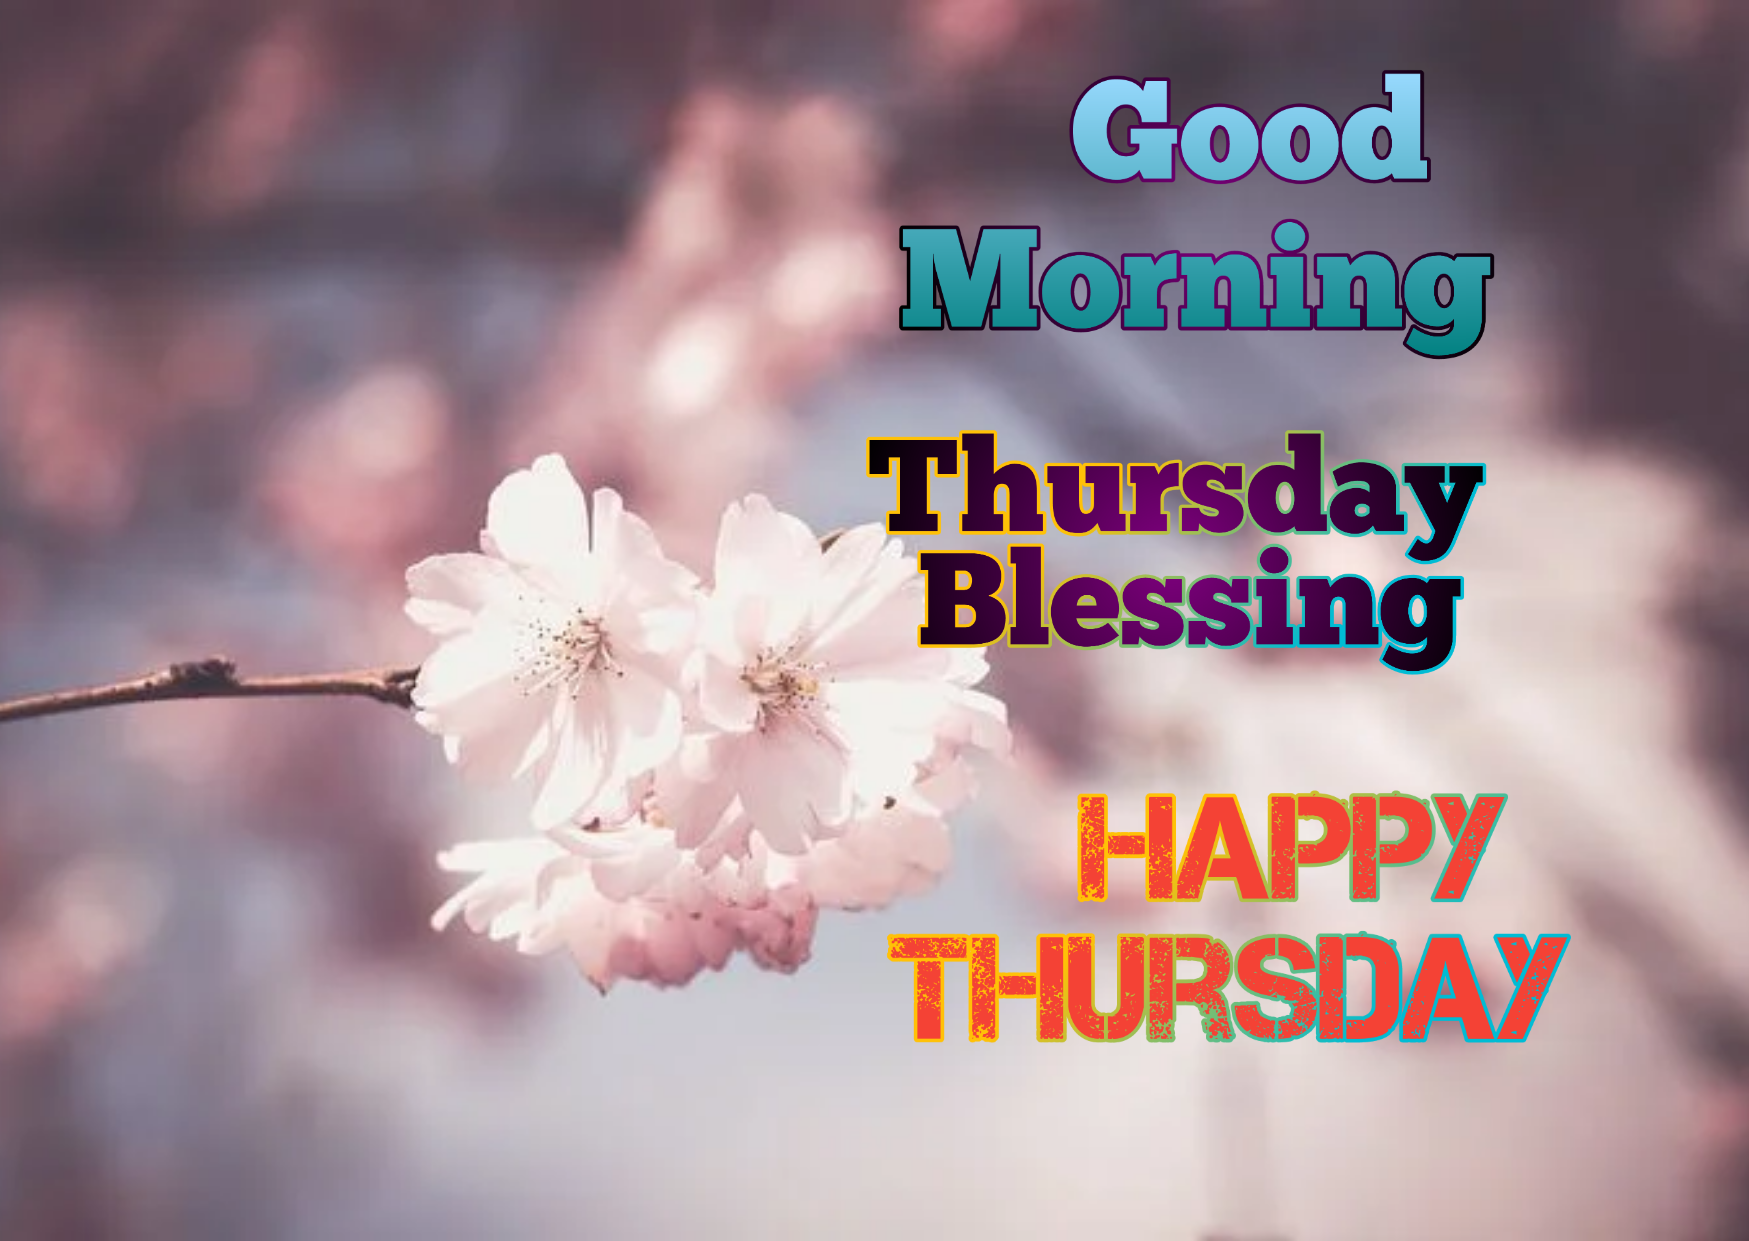 Happy Thursday Images, Wishes, Wallpaper, Quotes, For Whatsapp, Facebook,